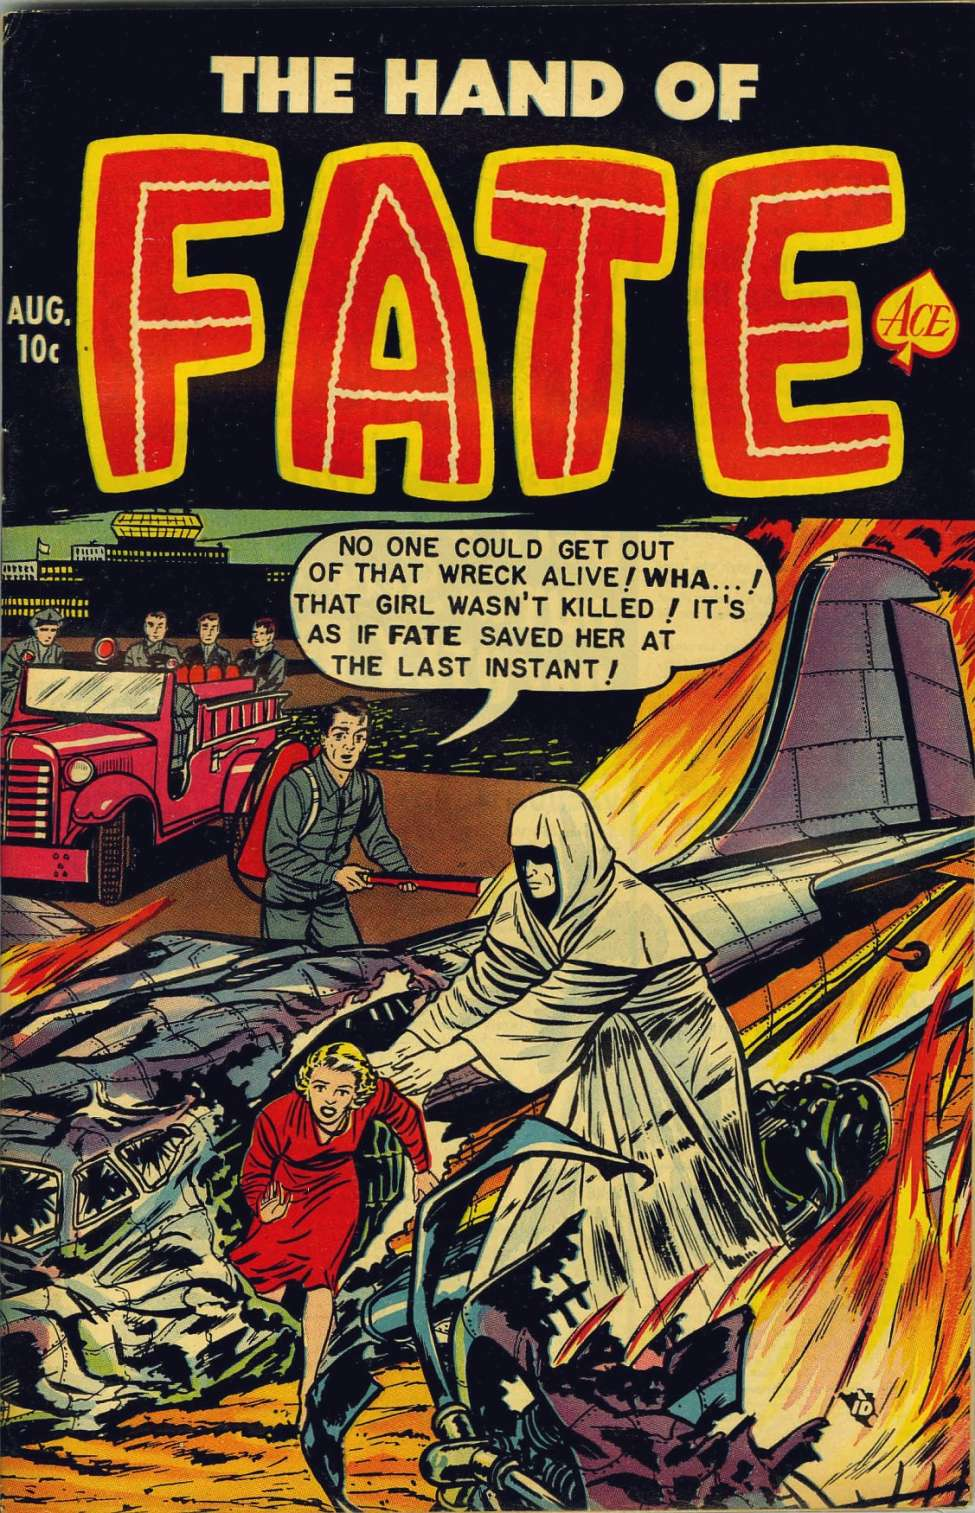 The Hand of Fate #12 by Ace